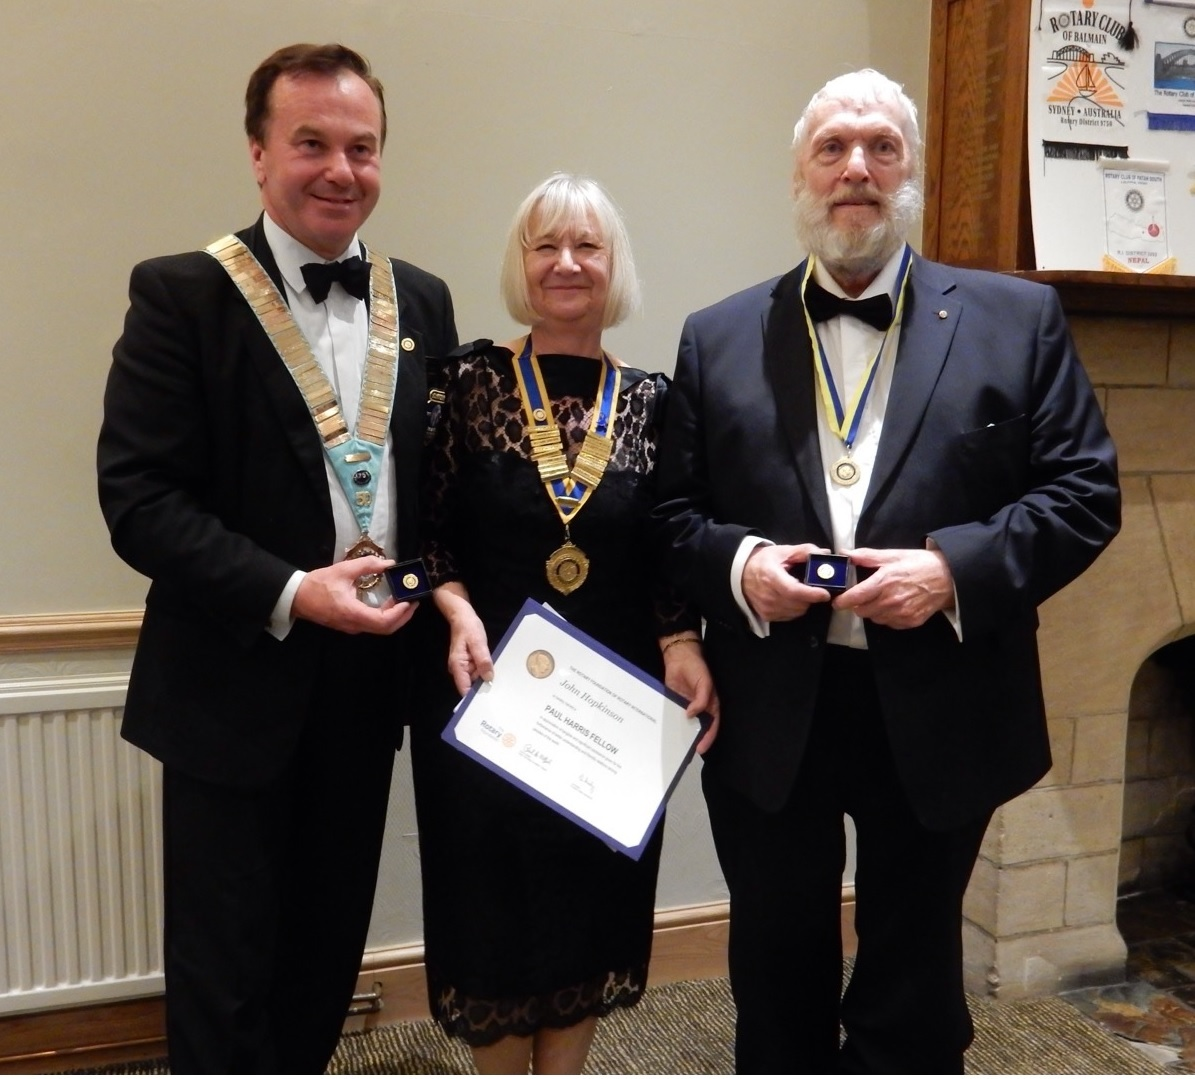 John Hopkinson, right, with Rotary district governor Robert Morphet and club president Chris Bown